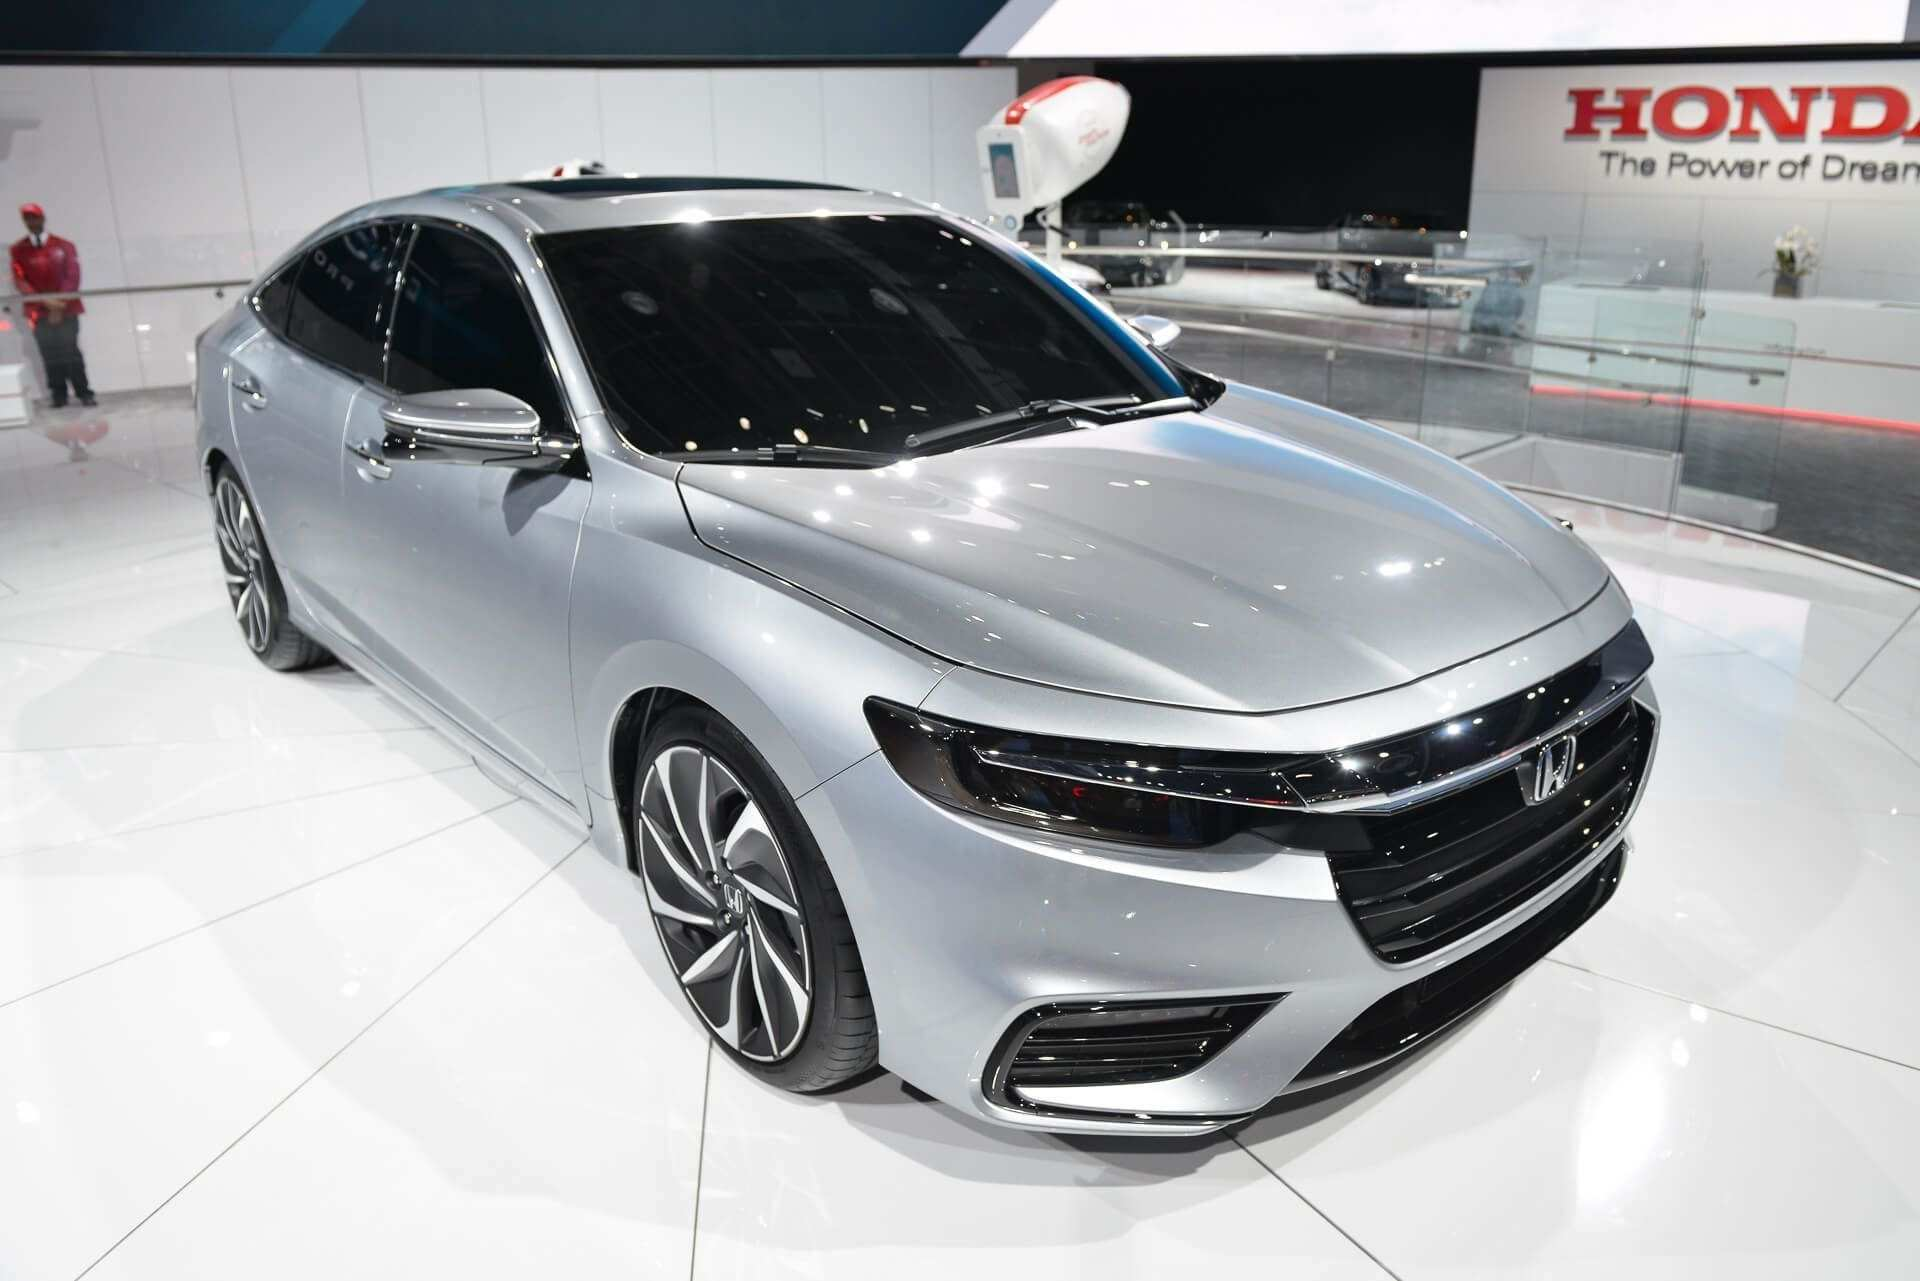 68 The 2020 Honda Civic Exterior Date Photos for 2020 Honda Civic Exterior Date